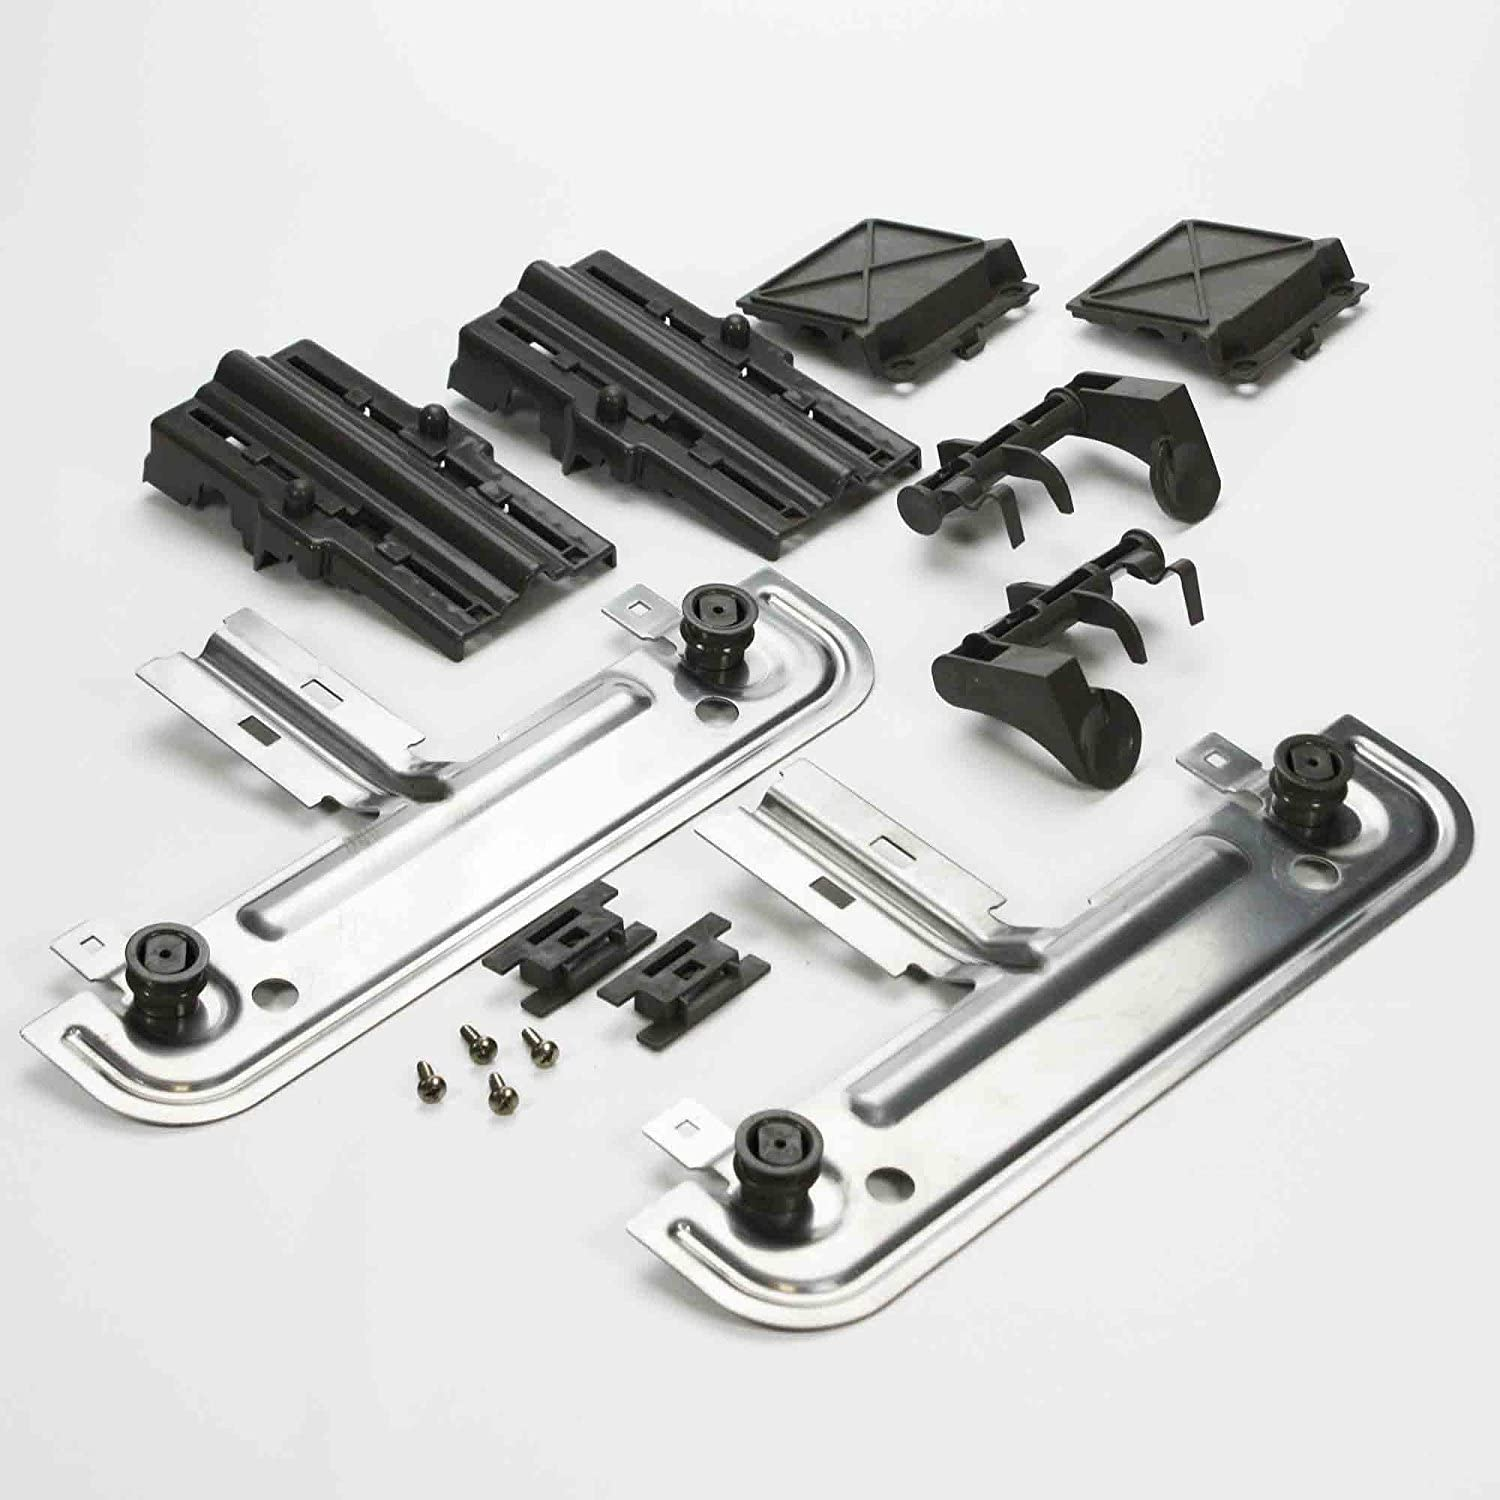 ConPus 2PACK Dishwasher Top Rack Parts Compatible with Whirlpool,Kenmore Elite Dishwasher Top Rack Adjuster Kit,W10350376 Replacement for Dishwasher Upper Rack Parts